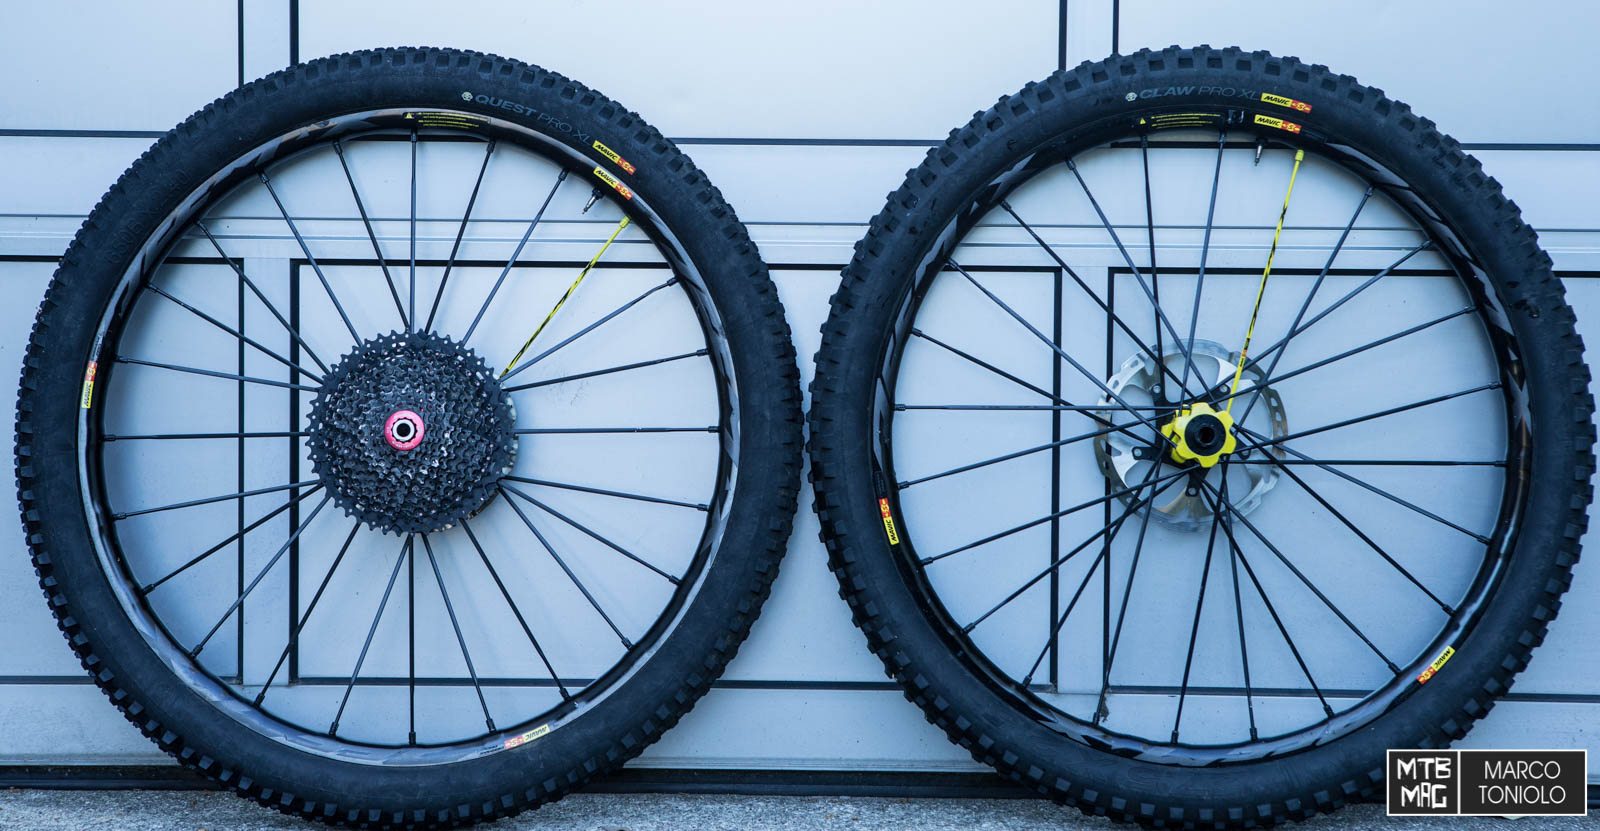 4327cb25441 MTB-MAG.COM - Mountain Bike Magazine | [Test] Mavic Deemax Pro ...